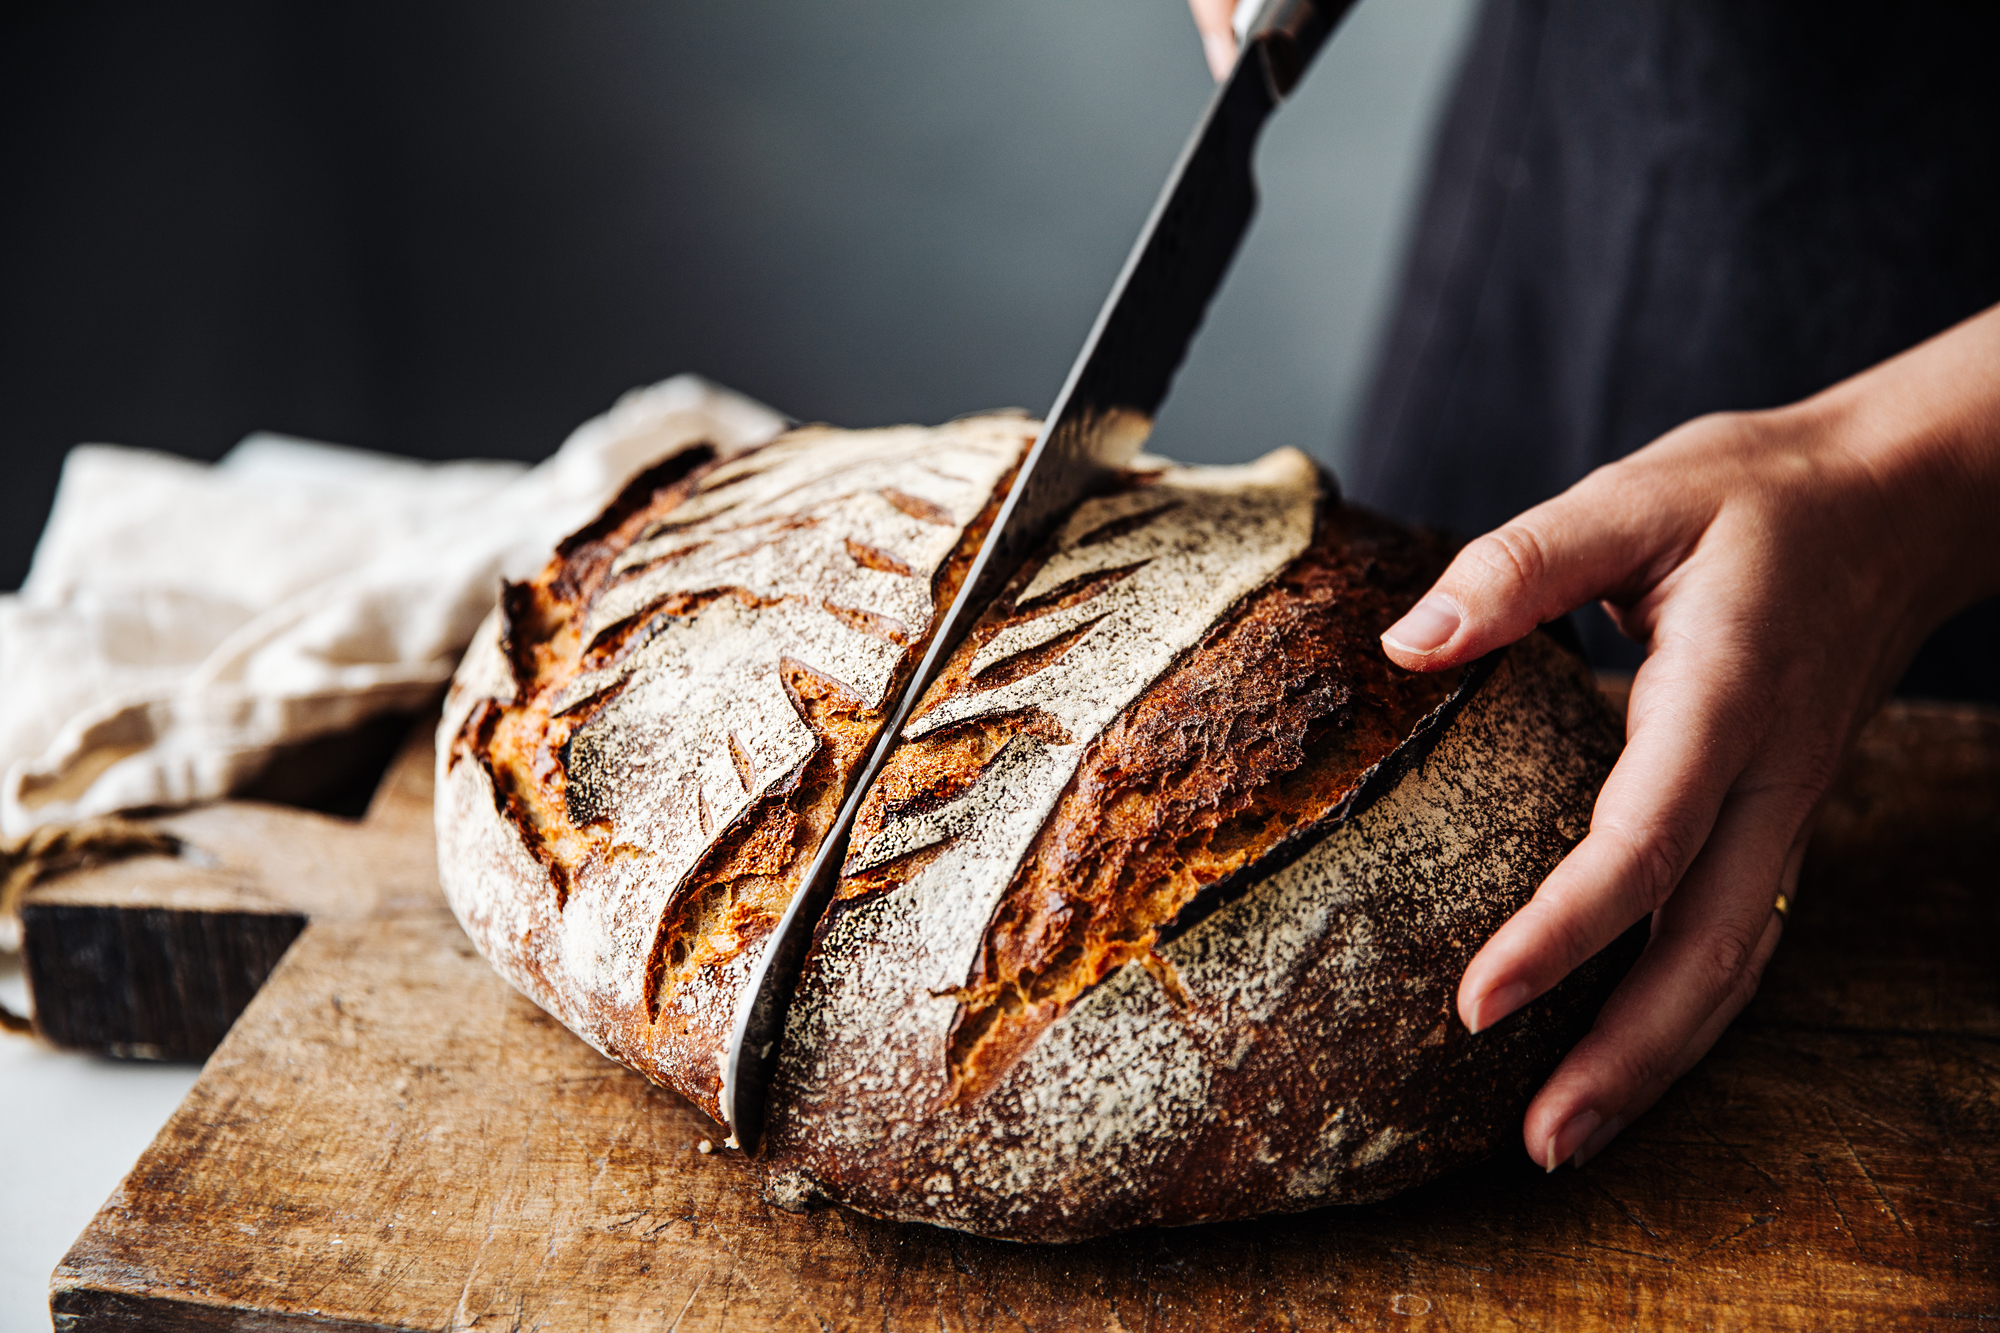 Slicing bread with a serrated knife